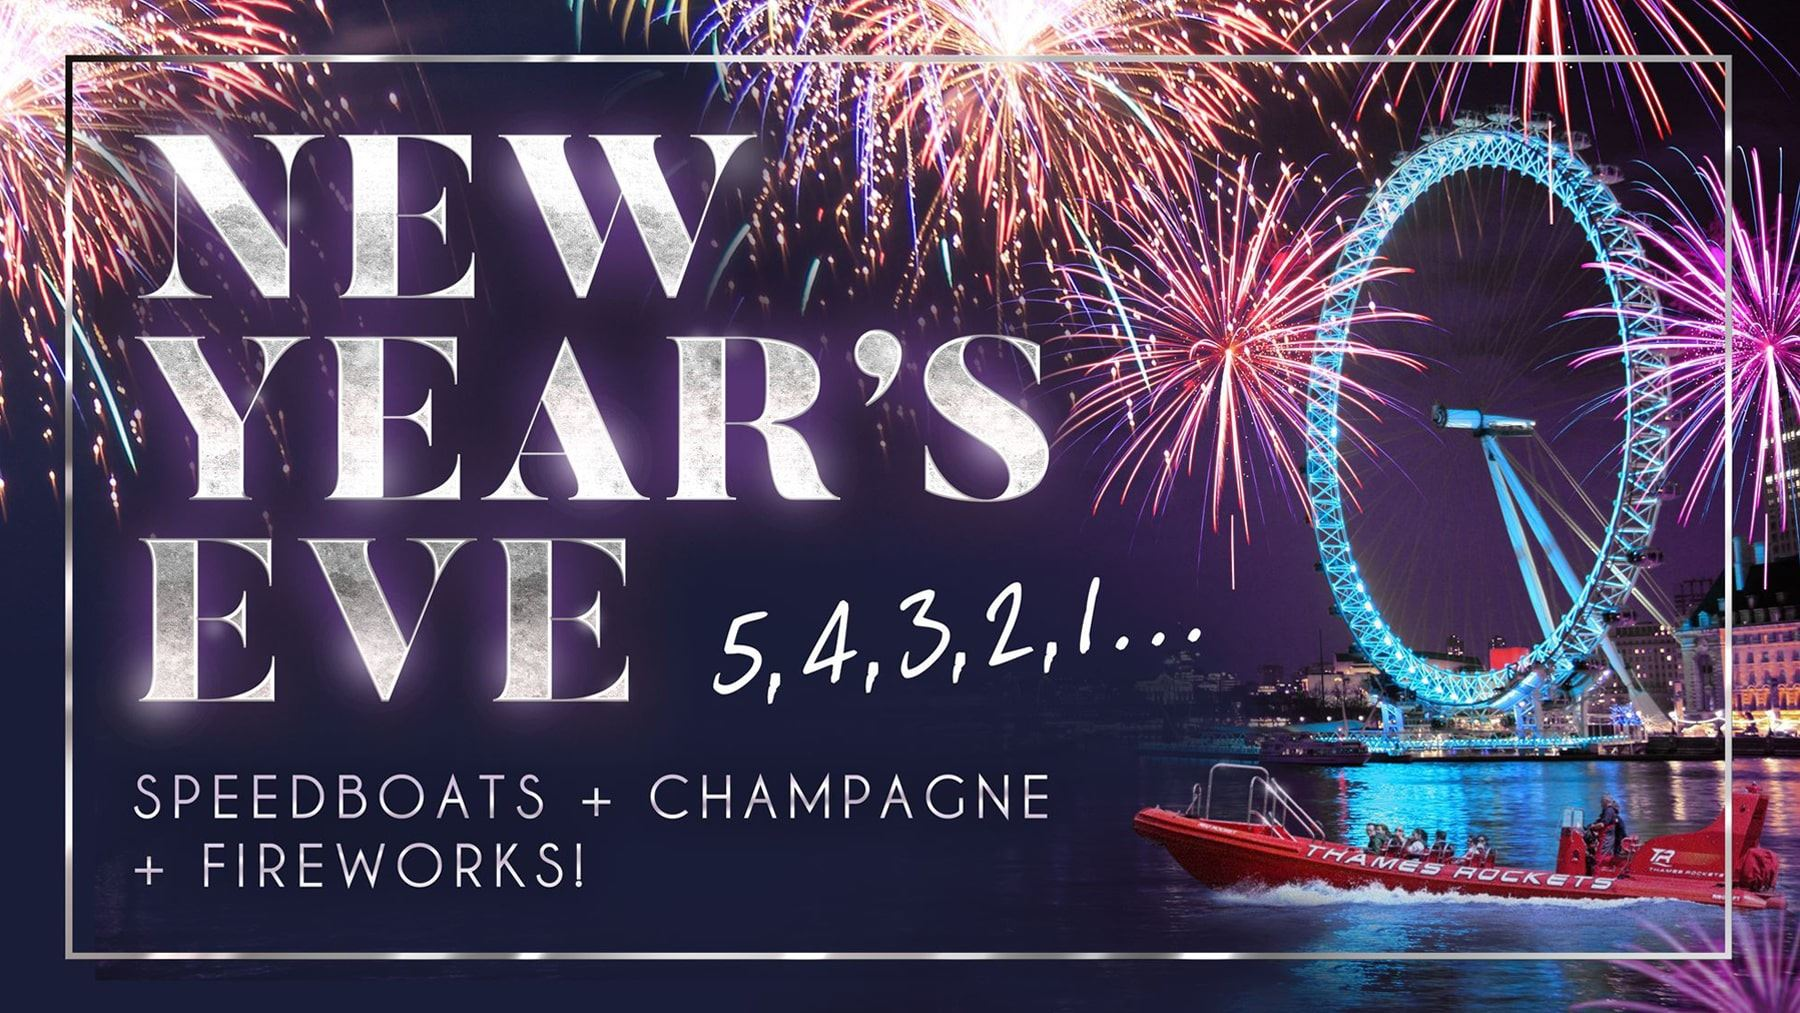 New Year's Eve speedboat sailings on the river Thames 2019